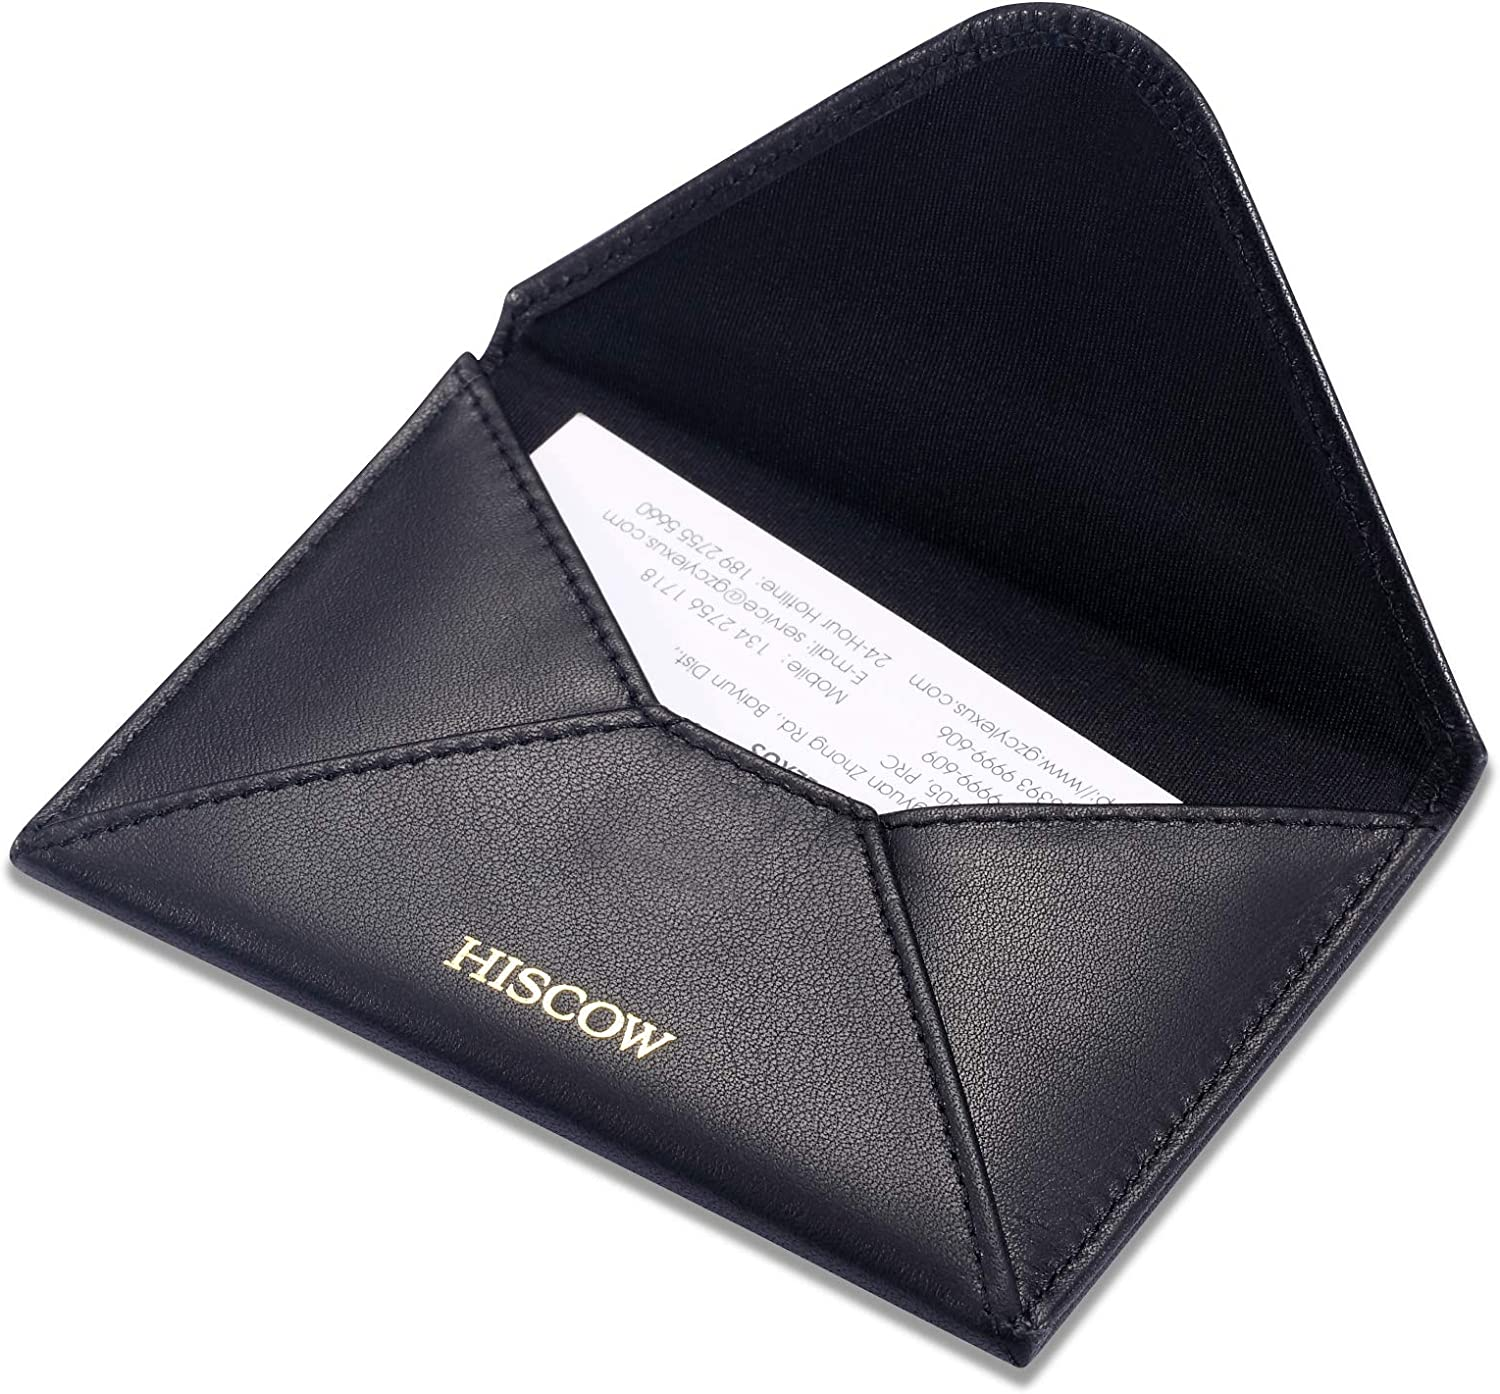 HISCOW Envelope Business Card Case with Magnet Closure - Italian Calfskin (Black, Gold Logo)